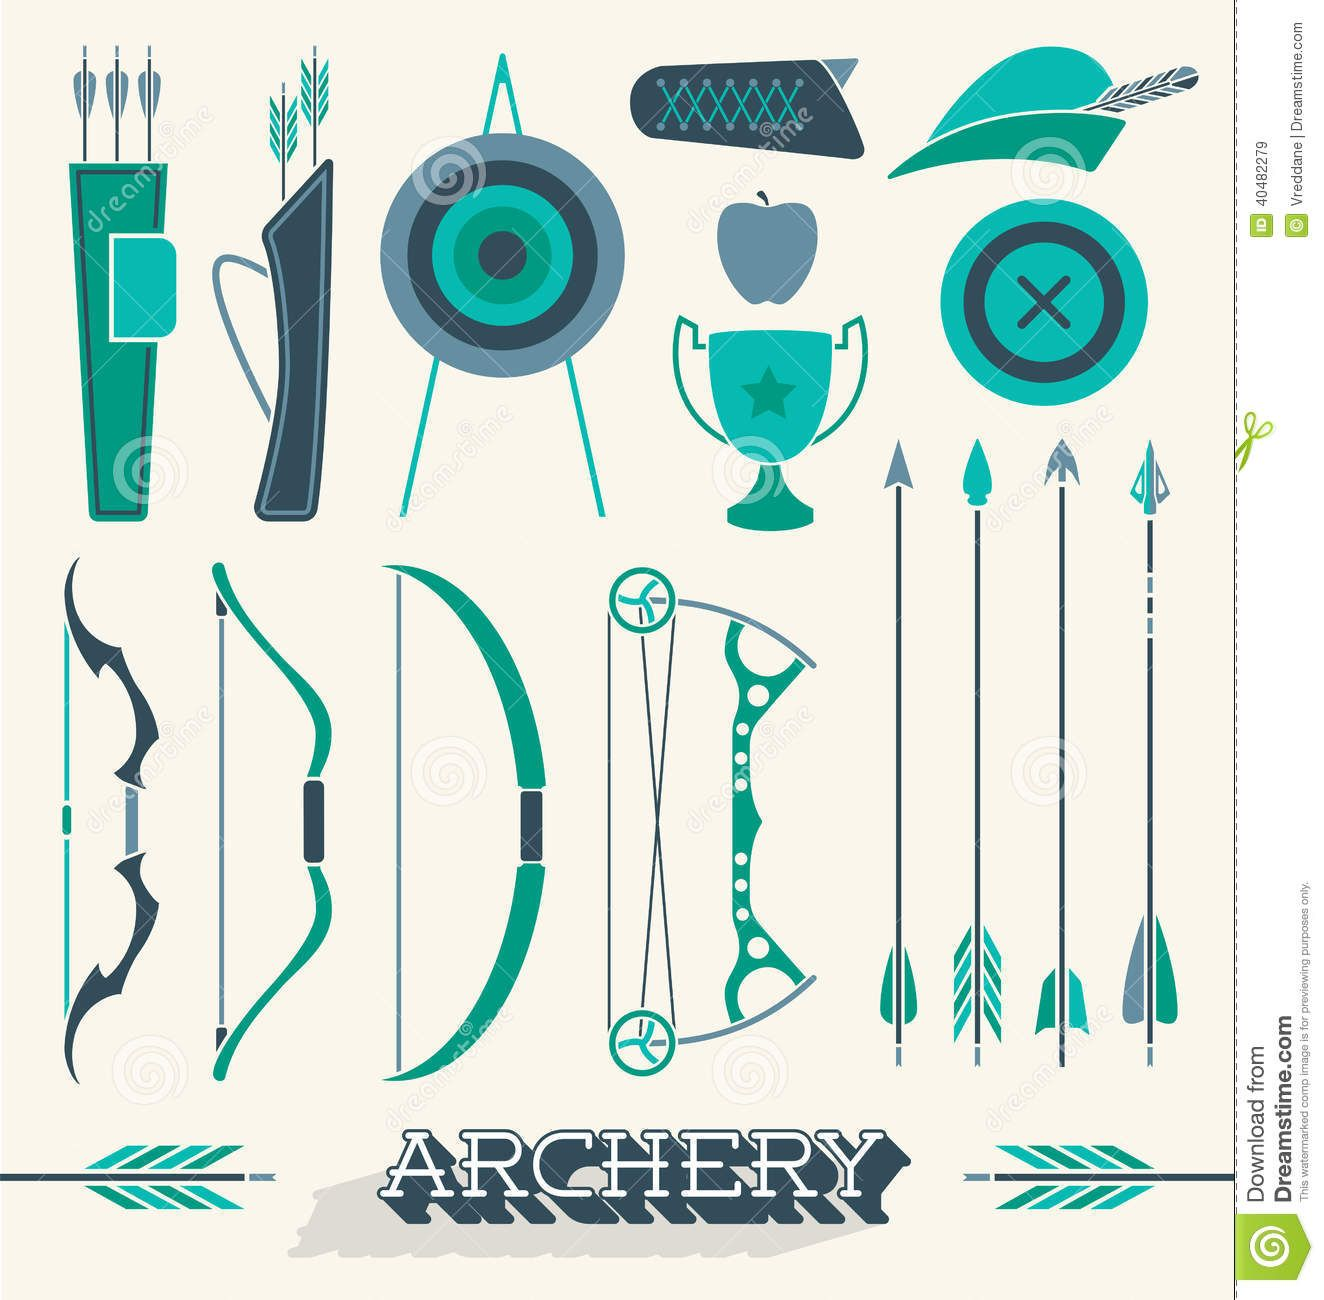 archery svg file Google Search Archery, Silhouette vector